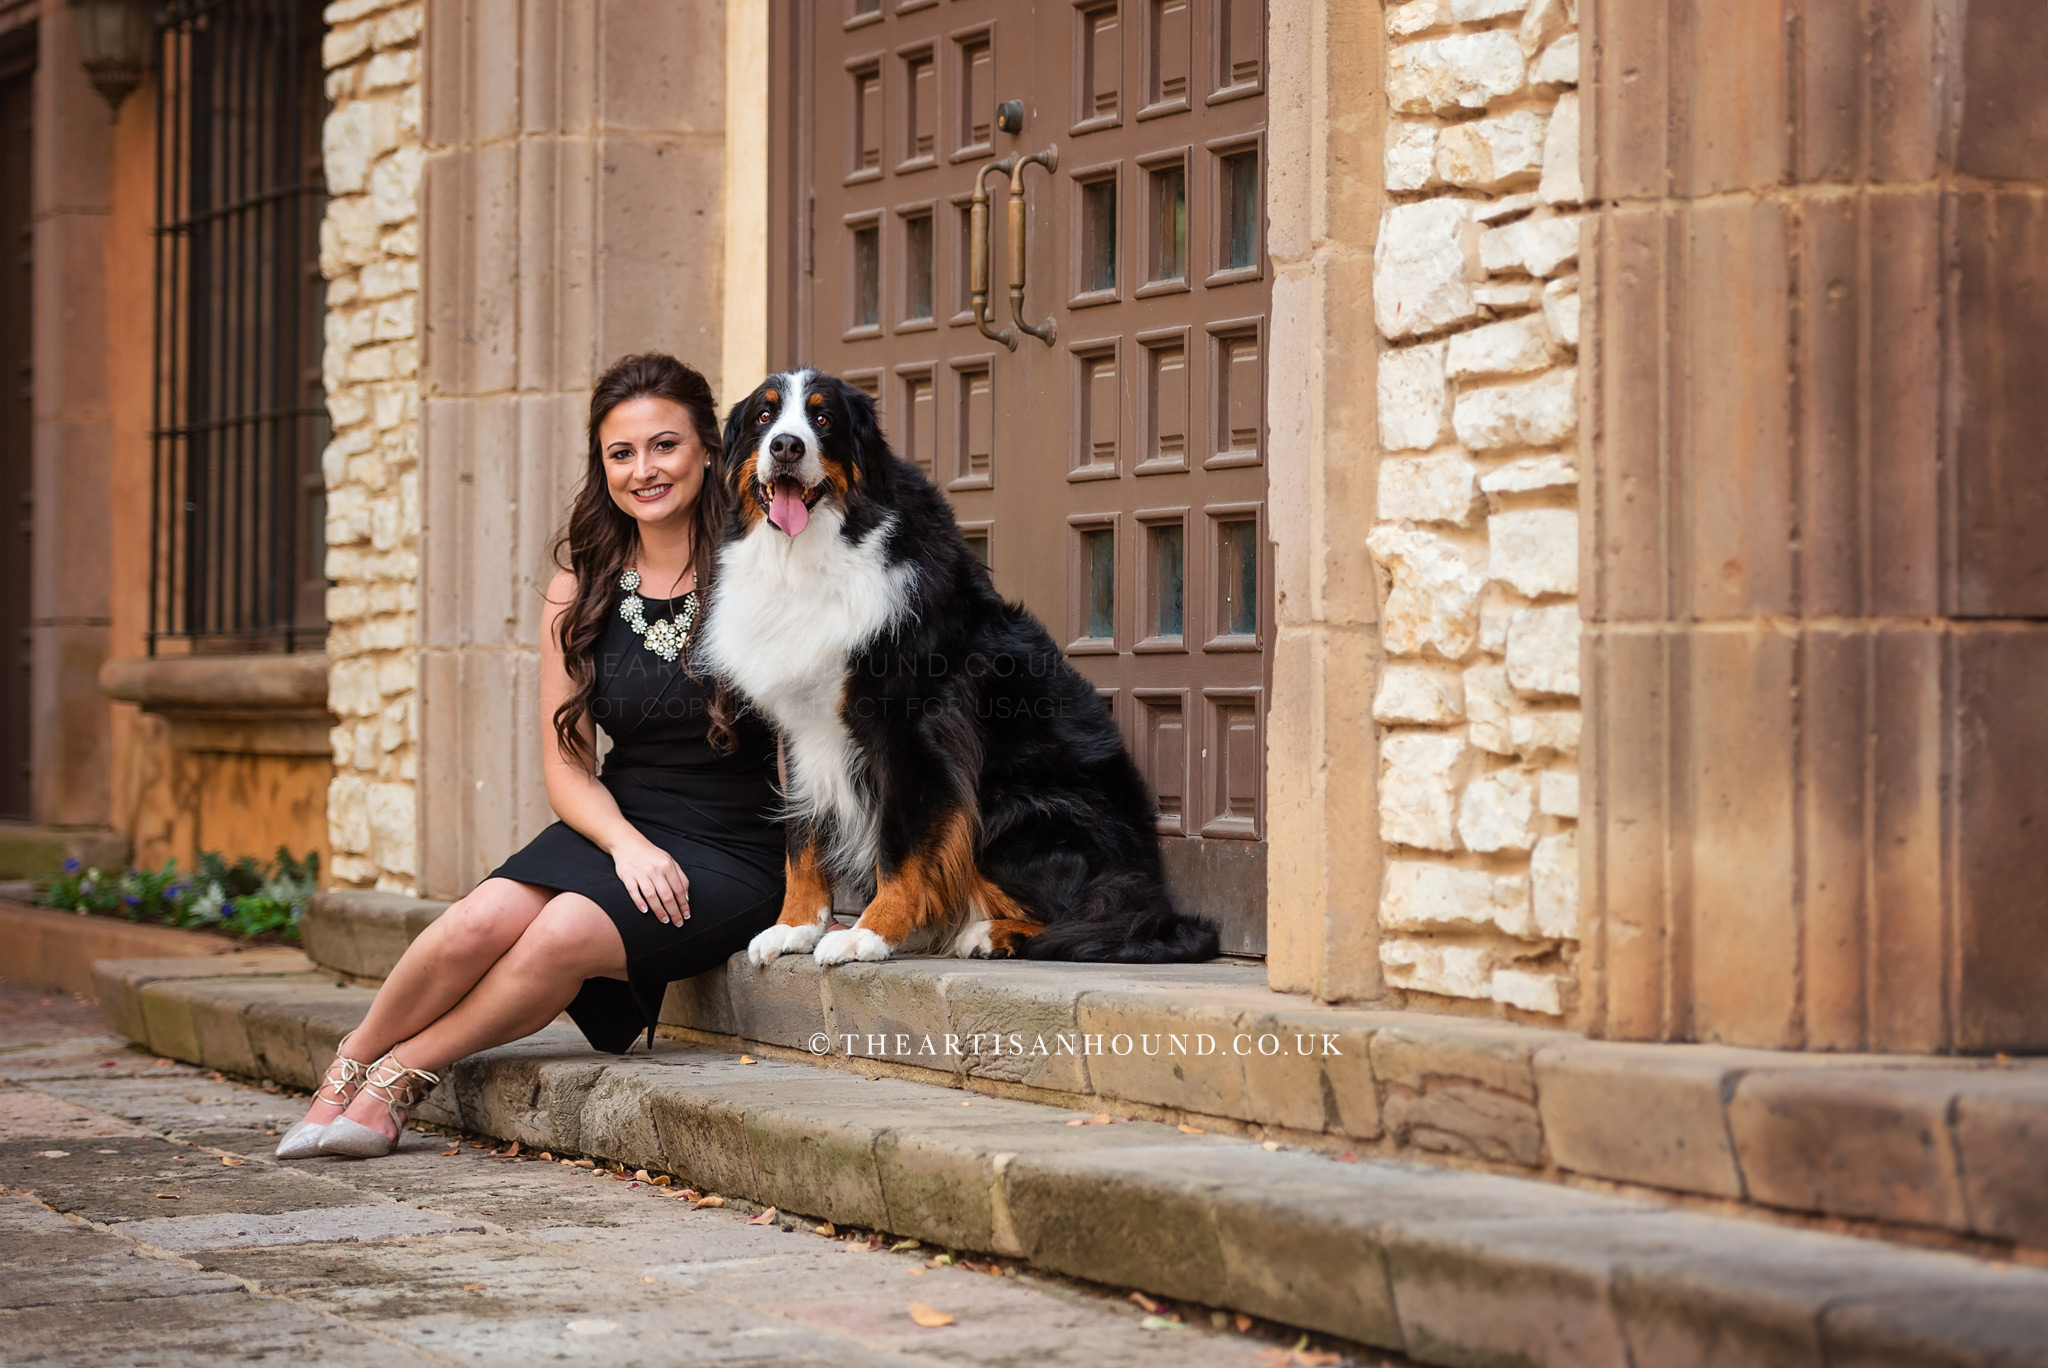 Dog and owner sitting in rustic doorway